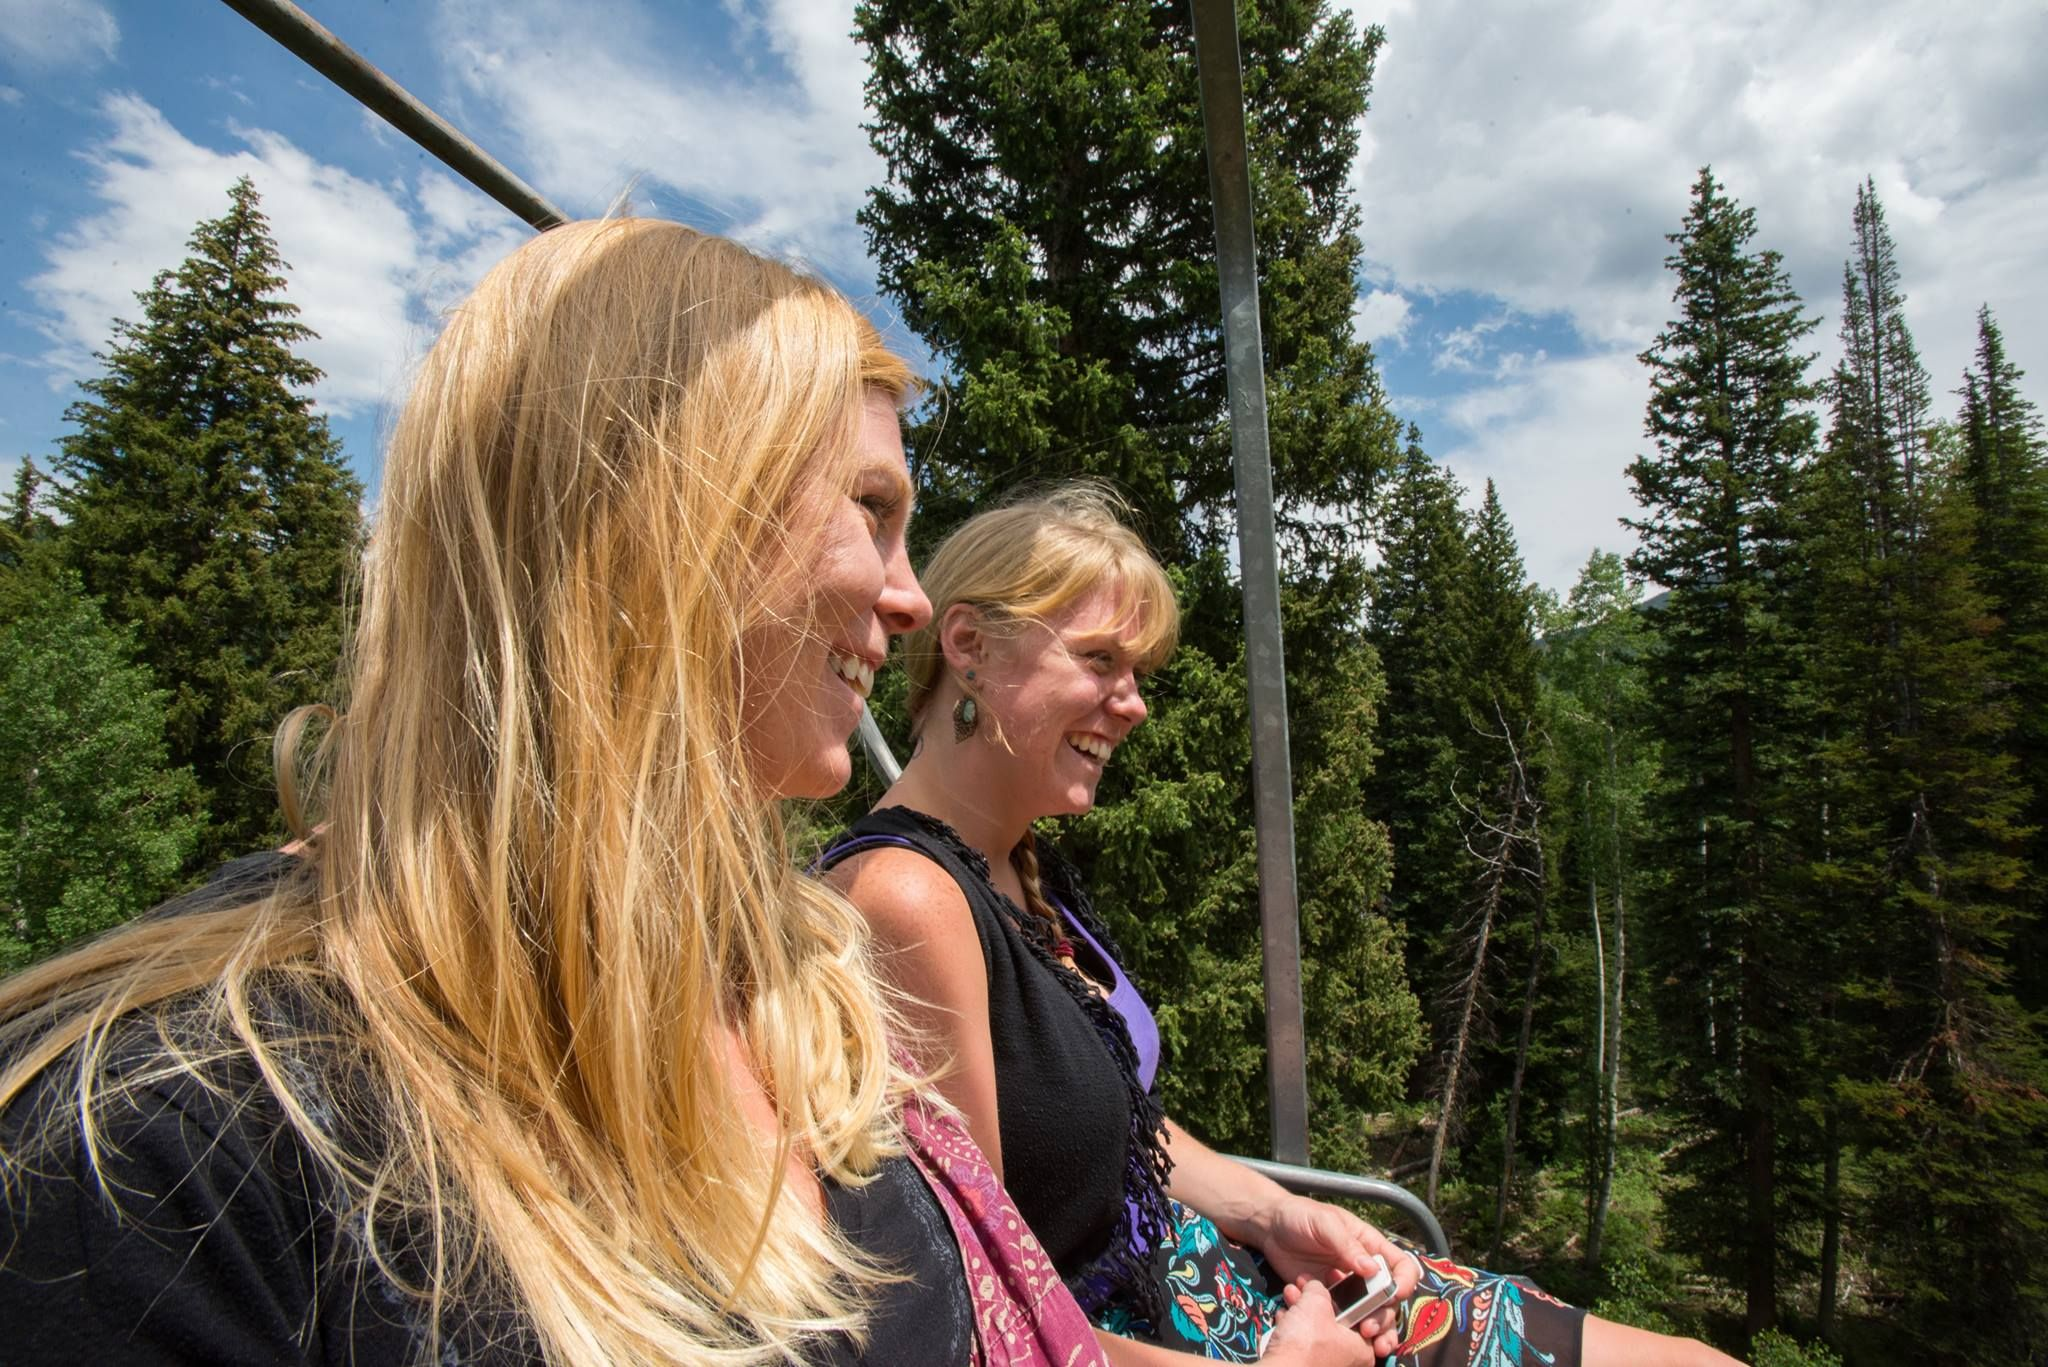 Scenic lift rides and hiking at Solitude Mountain Resort in Utah. Solitude opens for summer on June 13th.